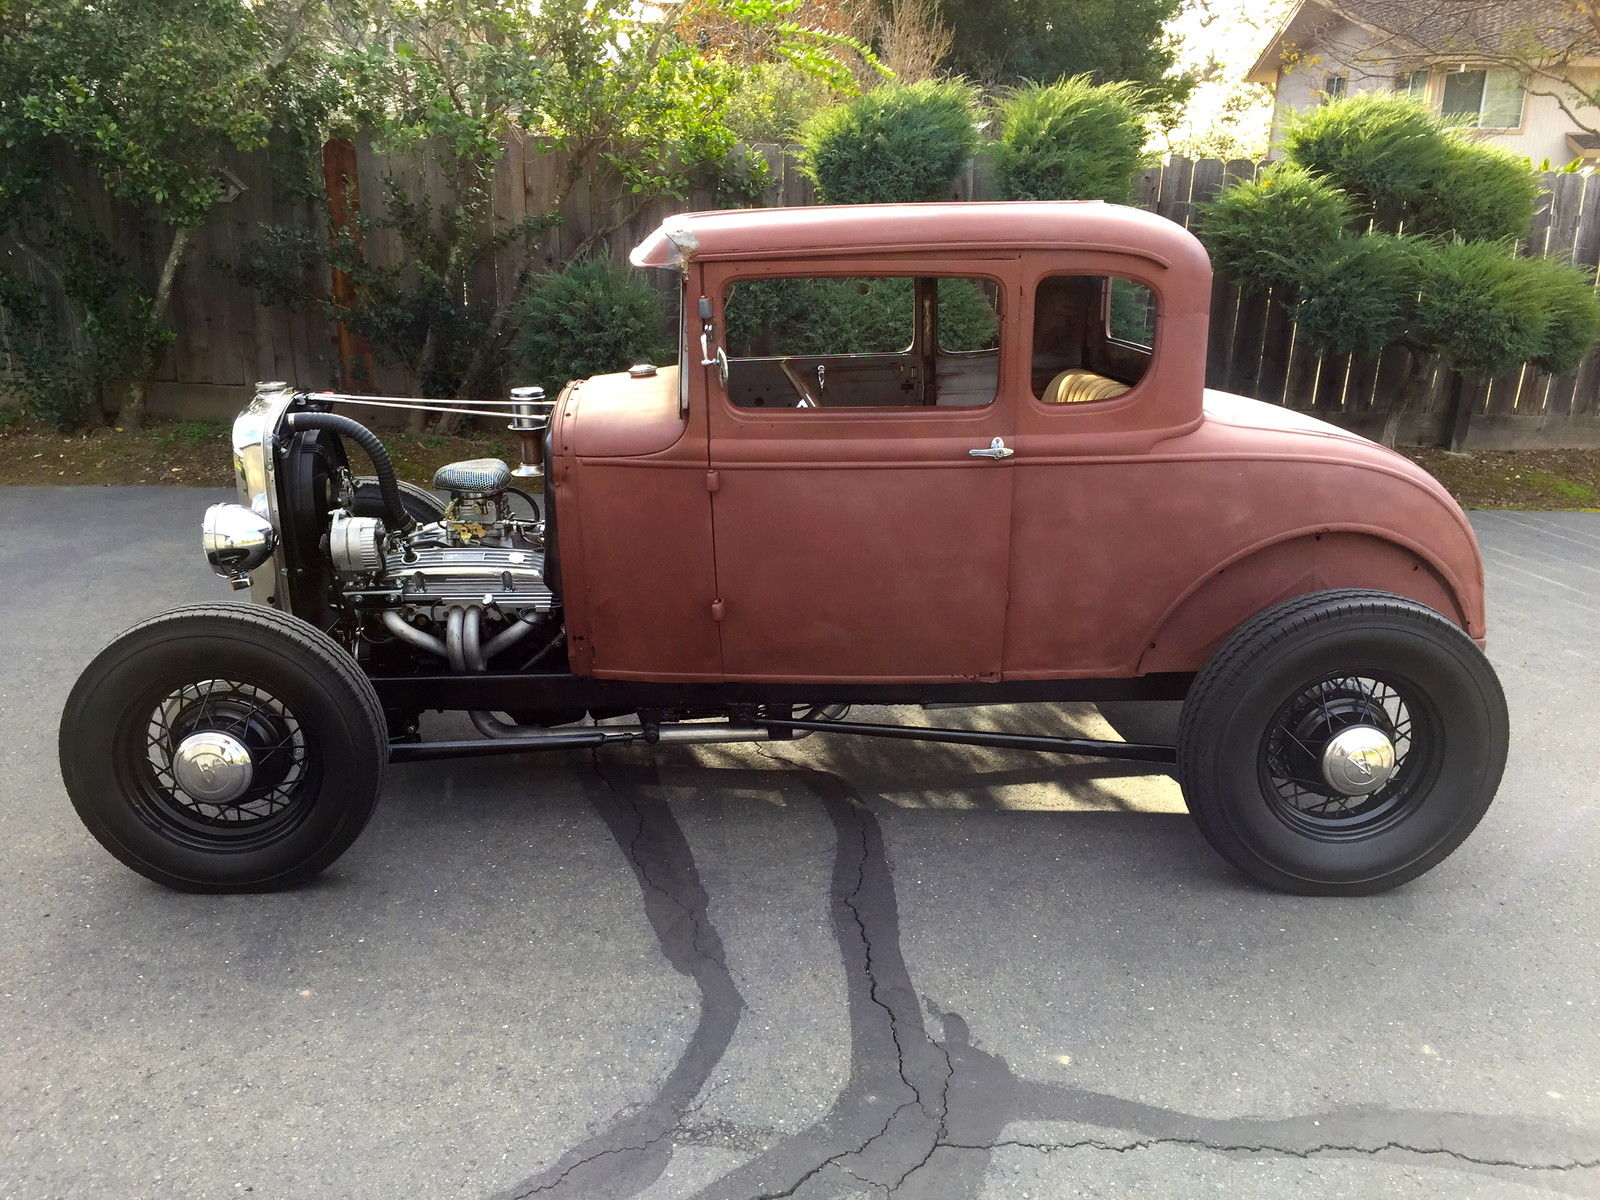 1931 ford model a coupe hot rod v8 california car 1928 1929 1930 1931 scta 1 locate ford truck by vin chevy vin number location get free image Ford Model T at bayanpartner.co